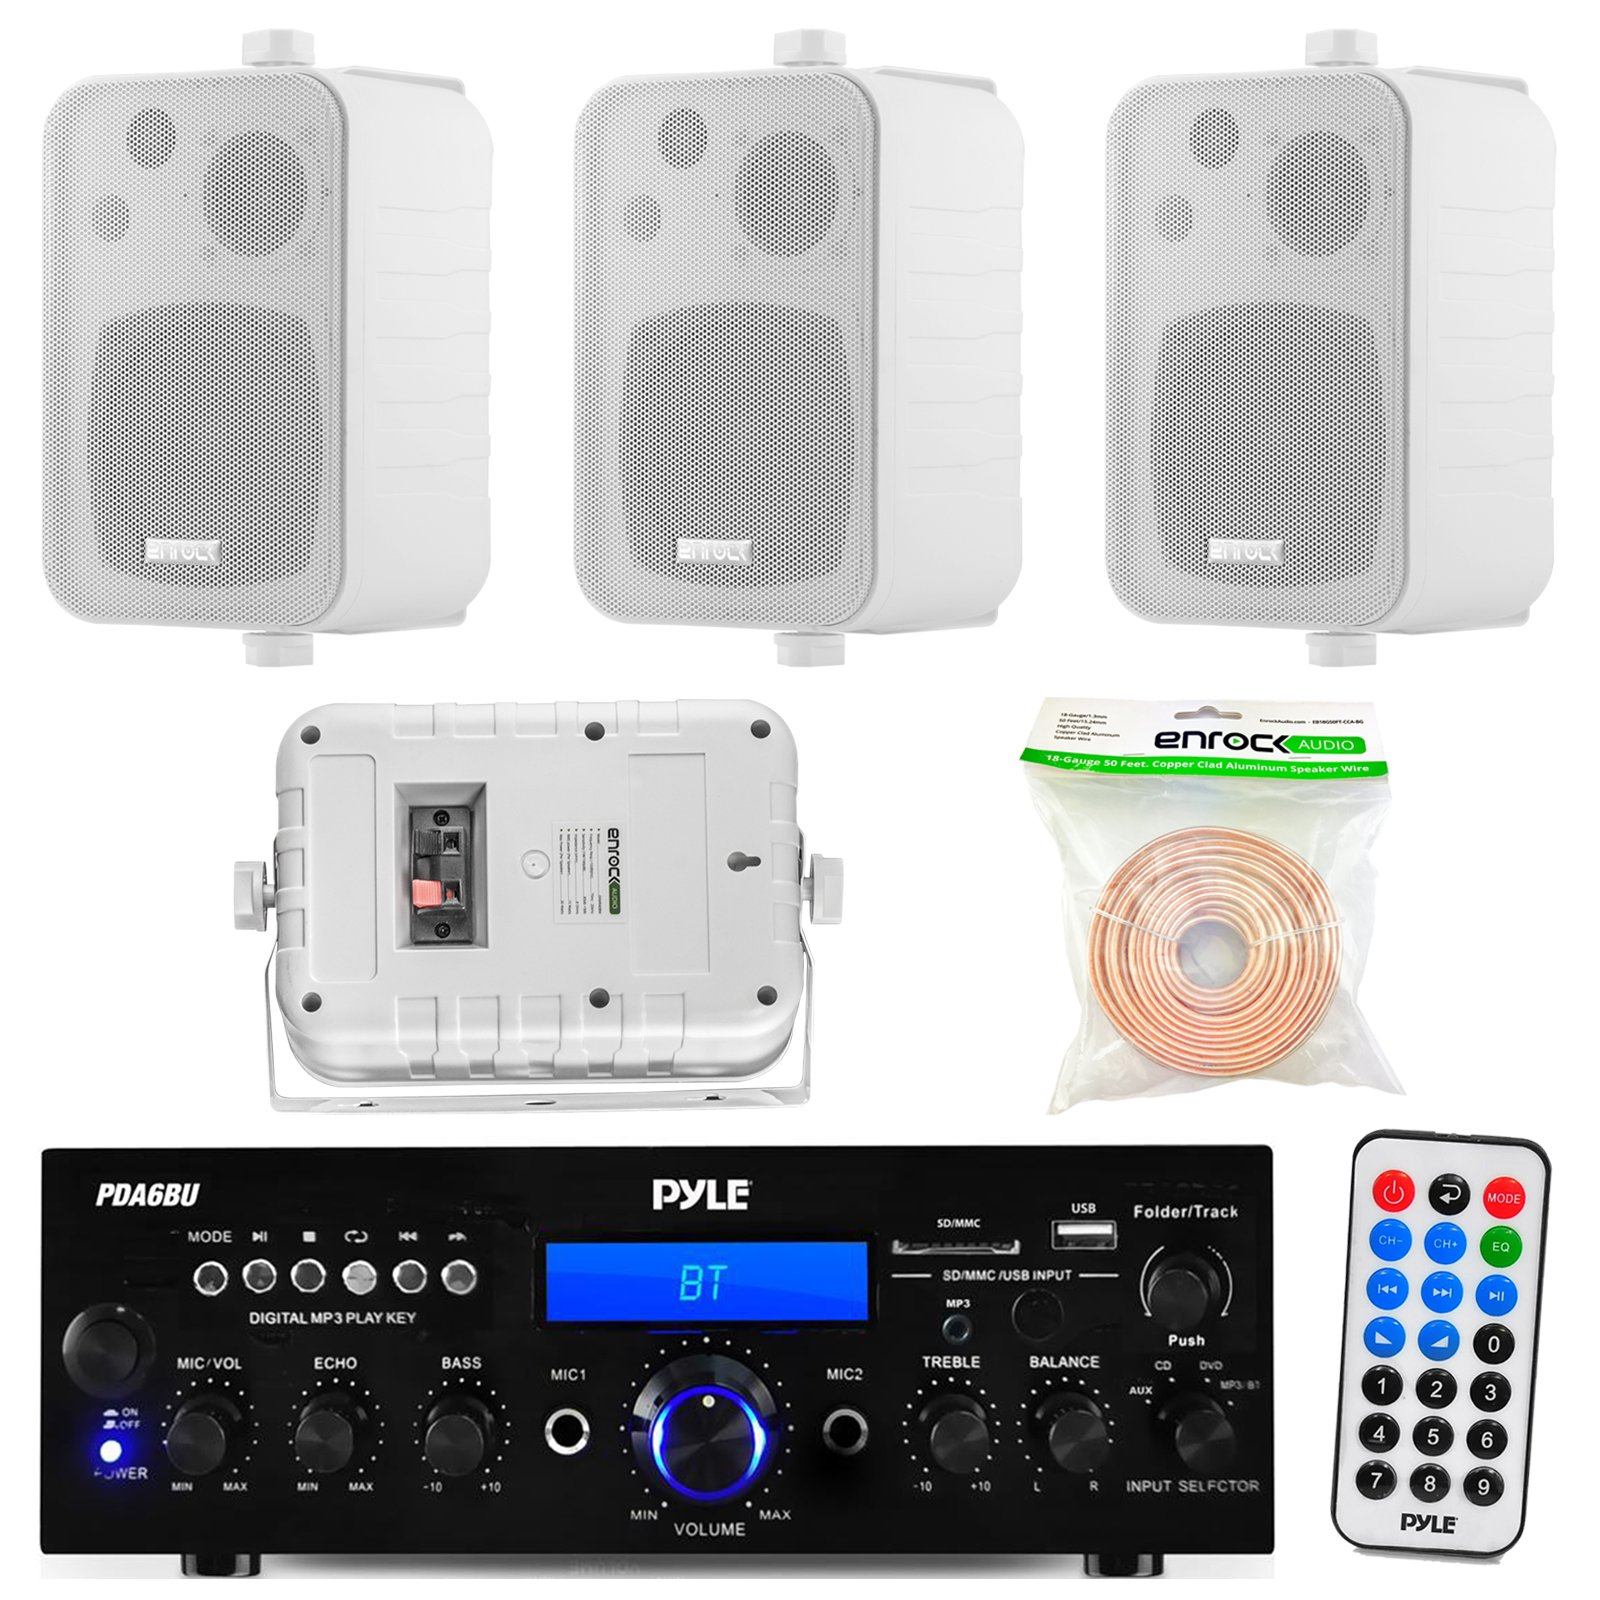 Pyle PDA6BU 200-Watt 2-Channel Digital USB/AUX FM Radio Stereo Amplifier Receiver, Bundle Combo With 4x Enrock EKMR408W 4'' Inch 200-Watt 3-Way White Box Speakers, 50 Feet 18-Gauge Speaker Wire